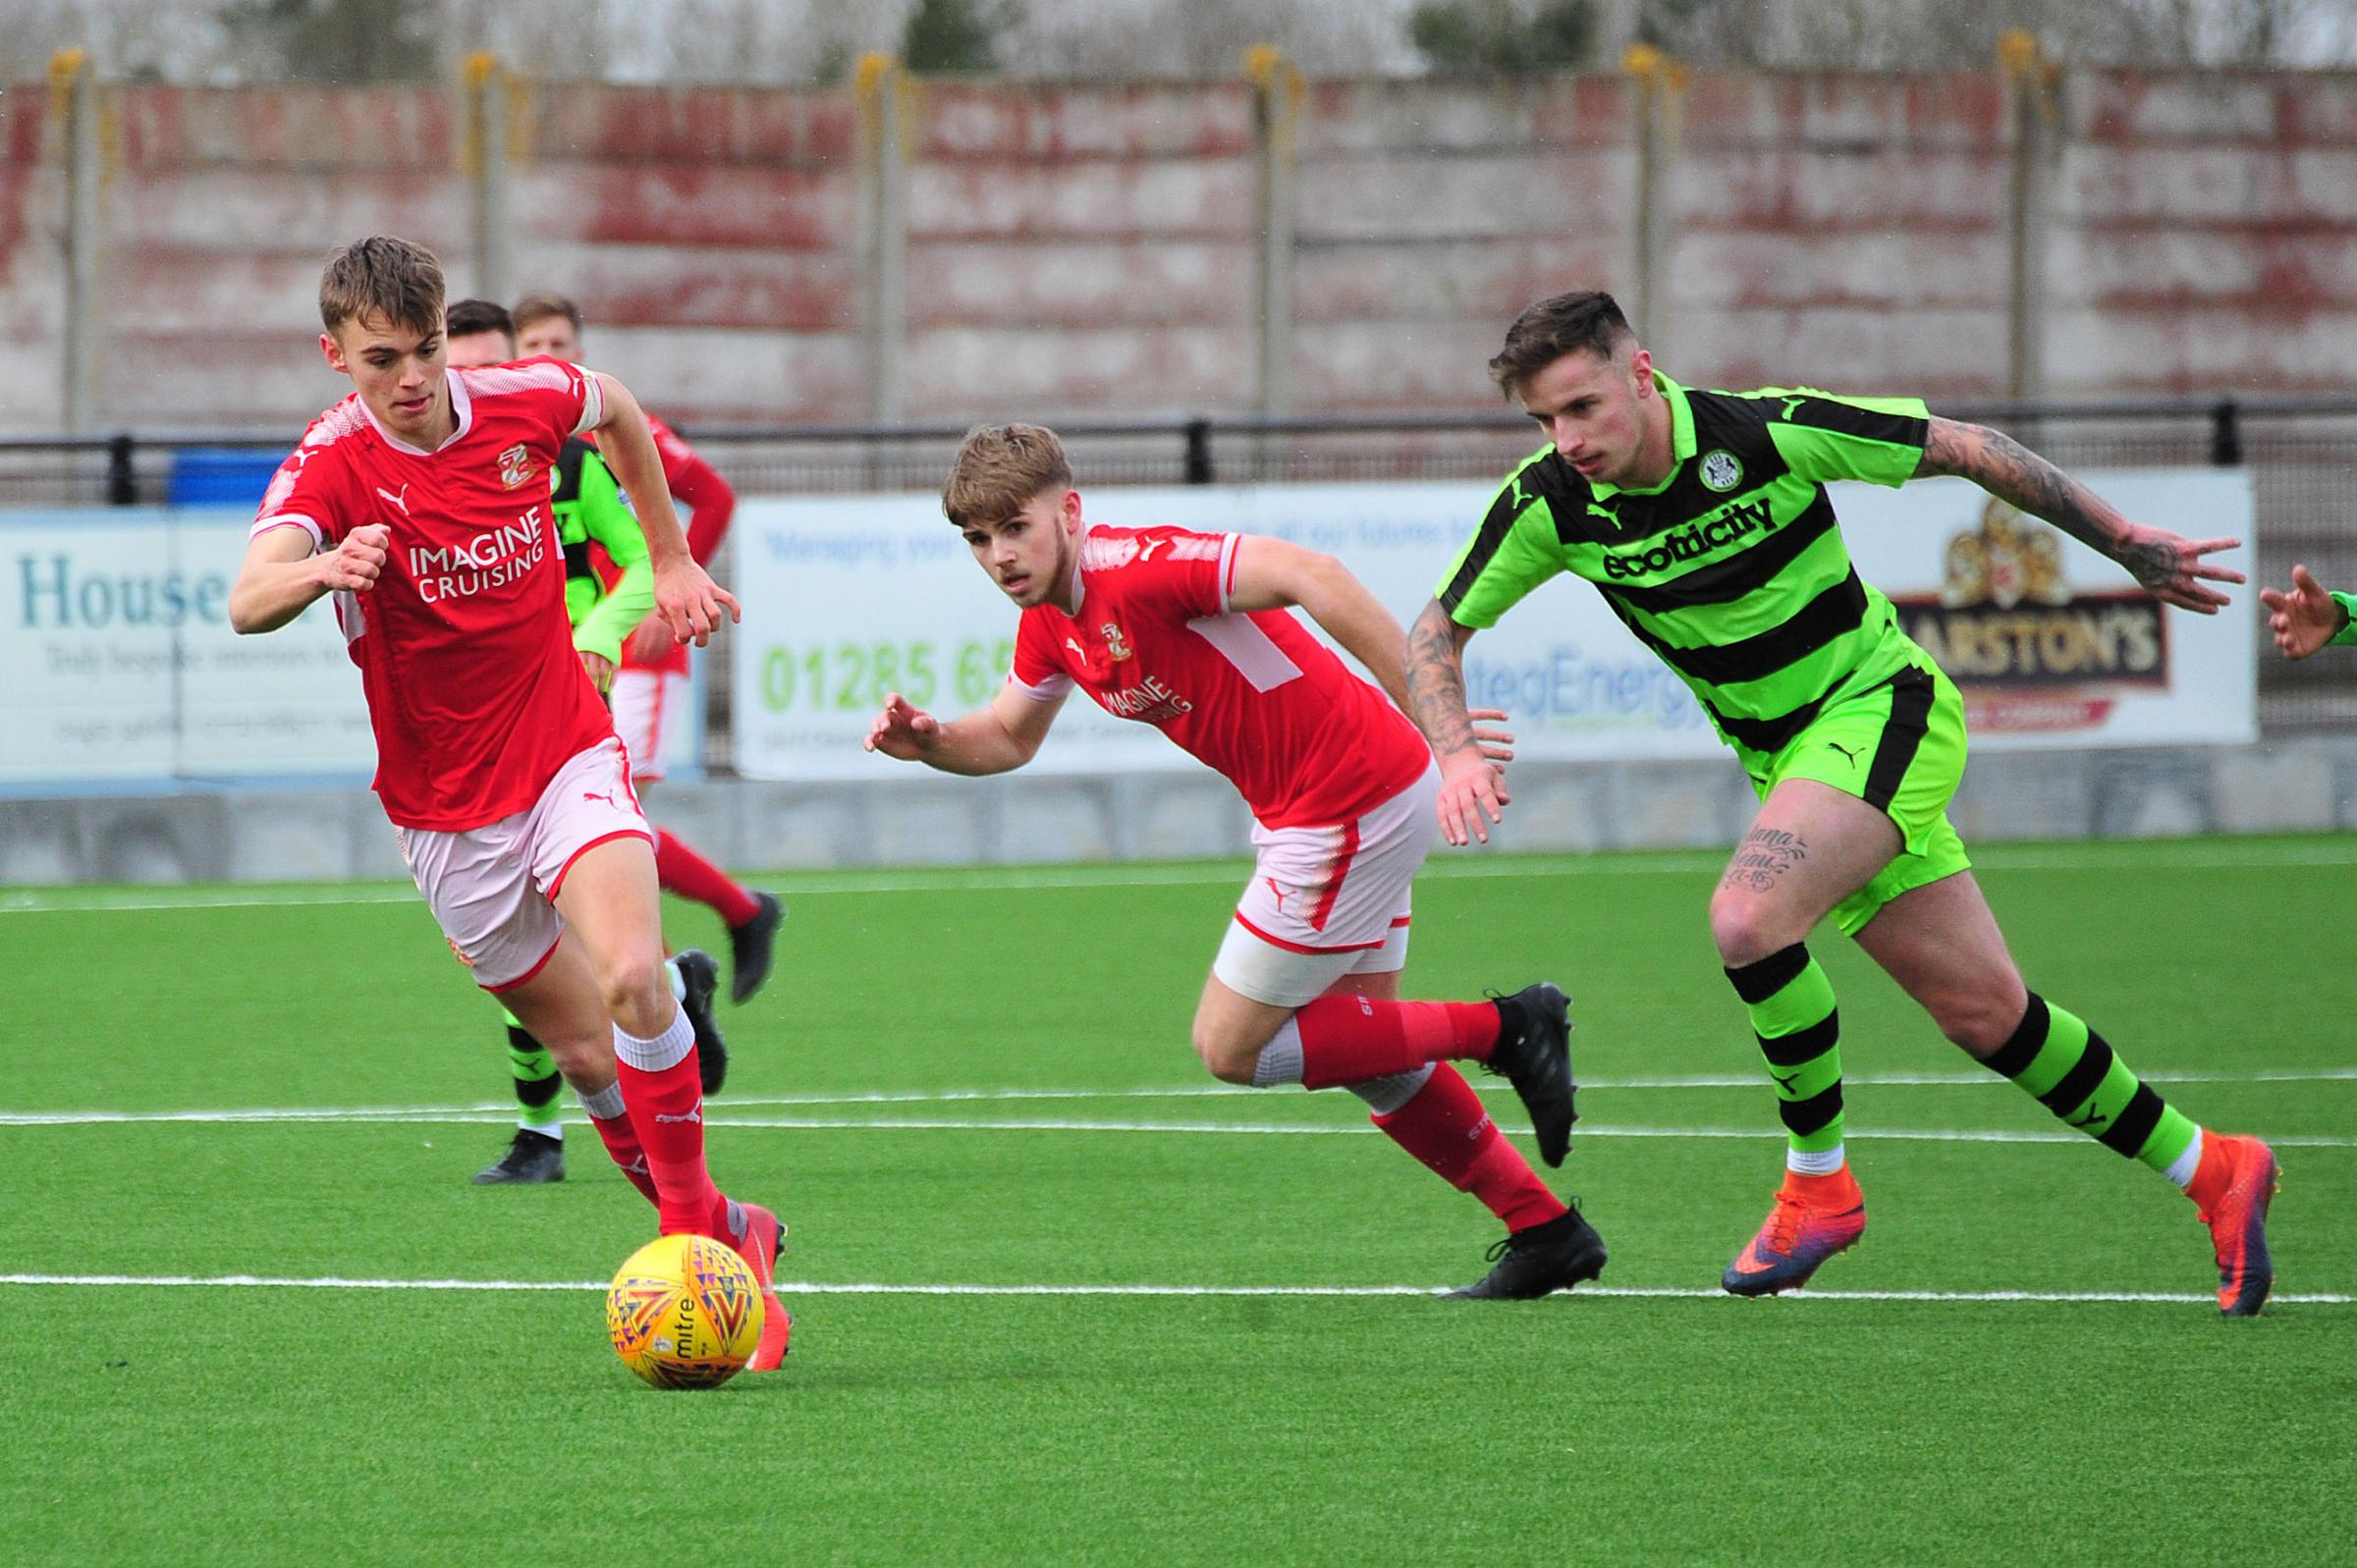 Scott Twine advances with the ball for Swindon Town. Swindon Town v Forest Green Rovers. Central League. Tuesday, February 27, 2018